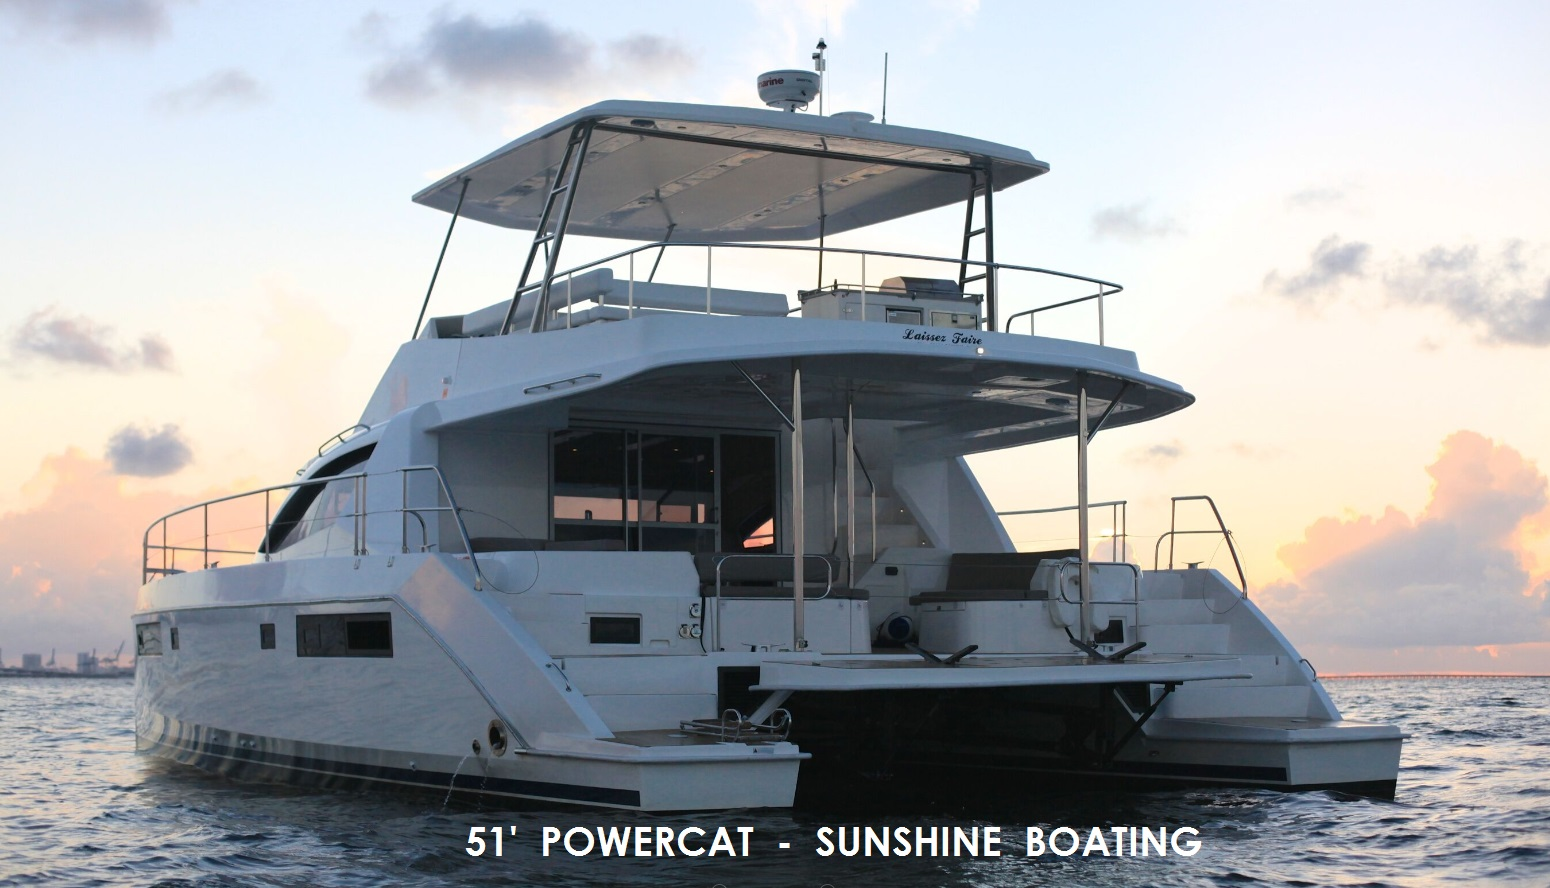 sunshine-boating-powercat-51-d